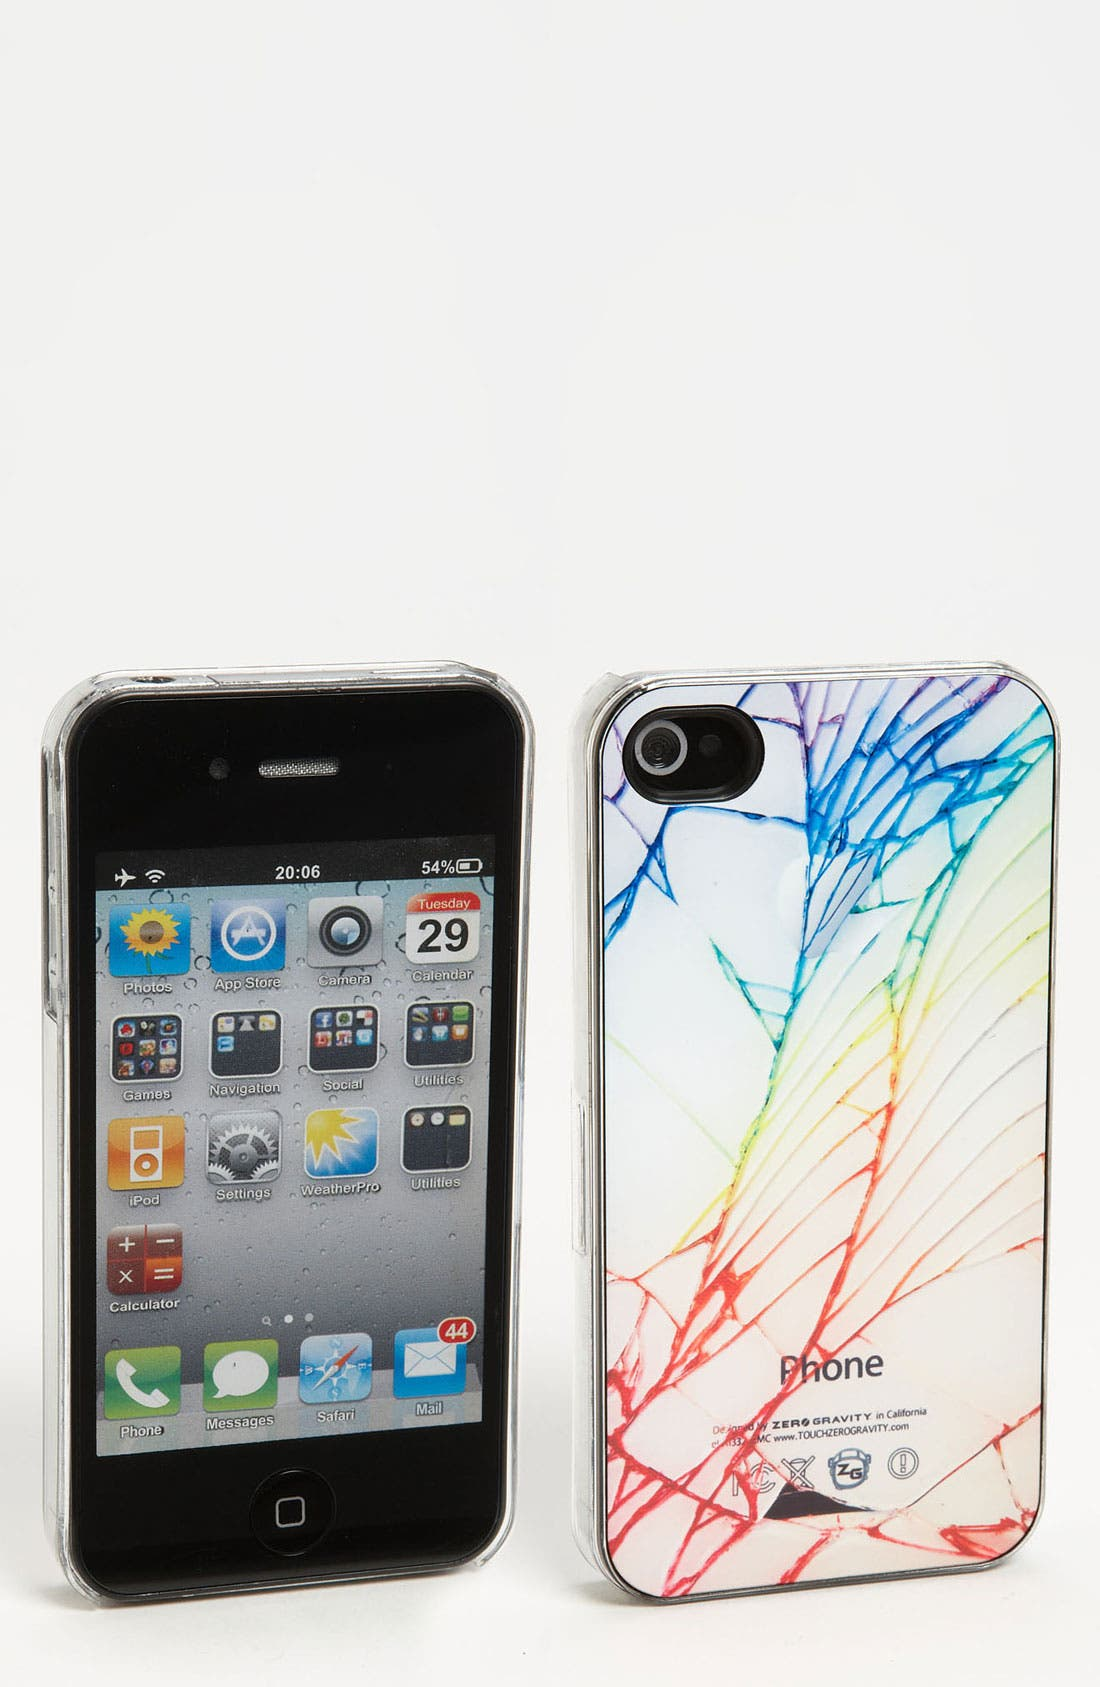 Main Image - ZERO GRAVITY 'Cracked' iPhone 4 & 4S Case